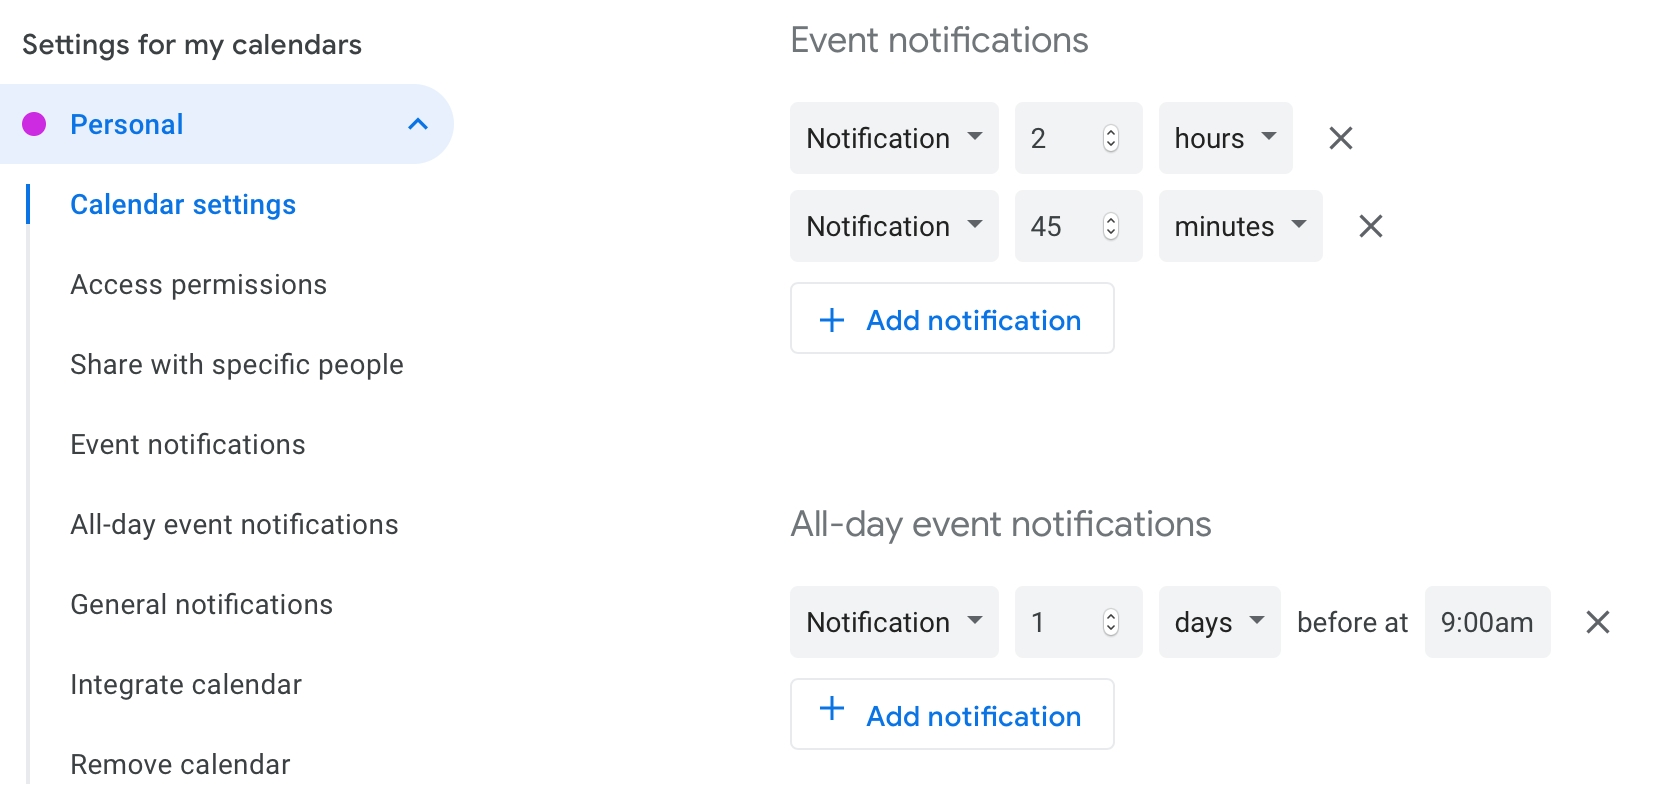 10 Google Calendar Tips To Master Of Your Schedule | Time-Holidays Listed Twice In Google Calender